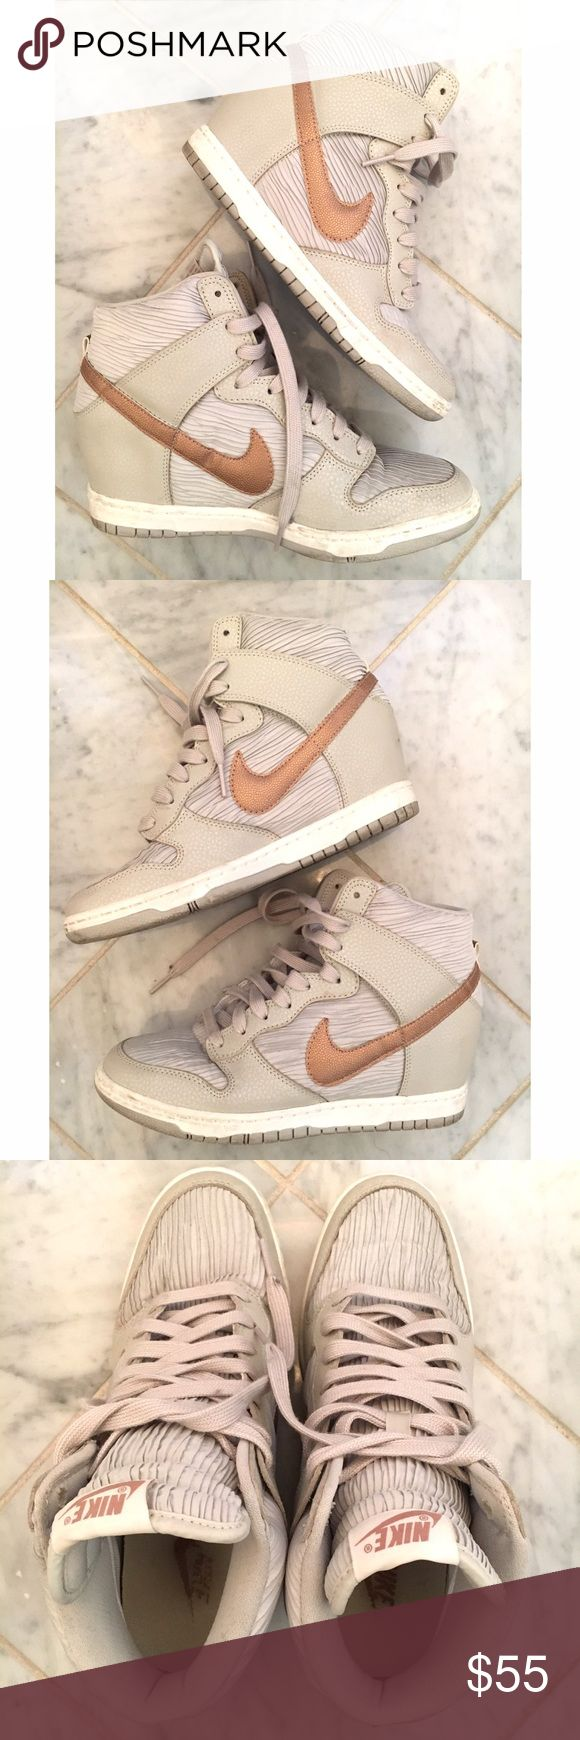 Nike Sky Hi Dunk Wedge Sneakers Size 9 Only worn a few times, these are in very good condition with small mark on back of right heel (shown in photo). Very light grey with copper swoosh, the color combo is perfectly on trend! Super comfy. Nike Shoes Sneakers